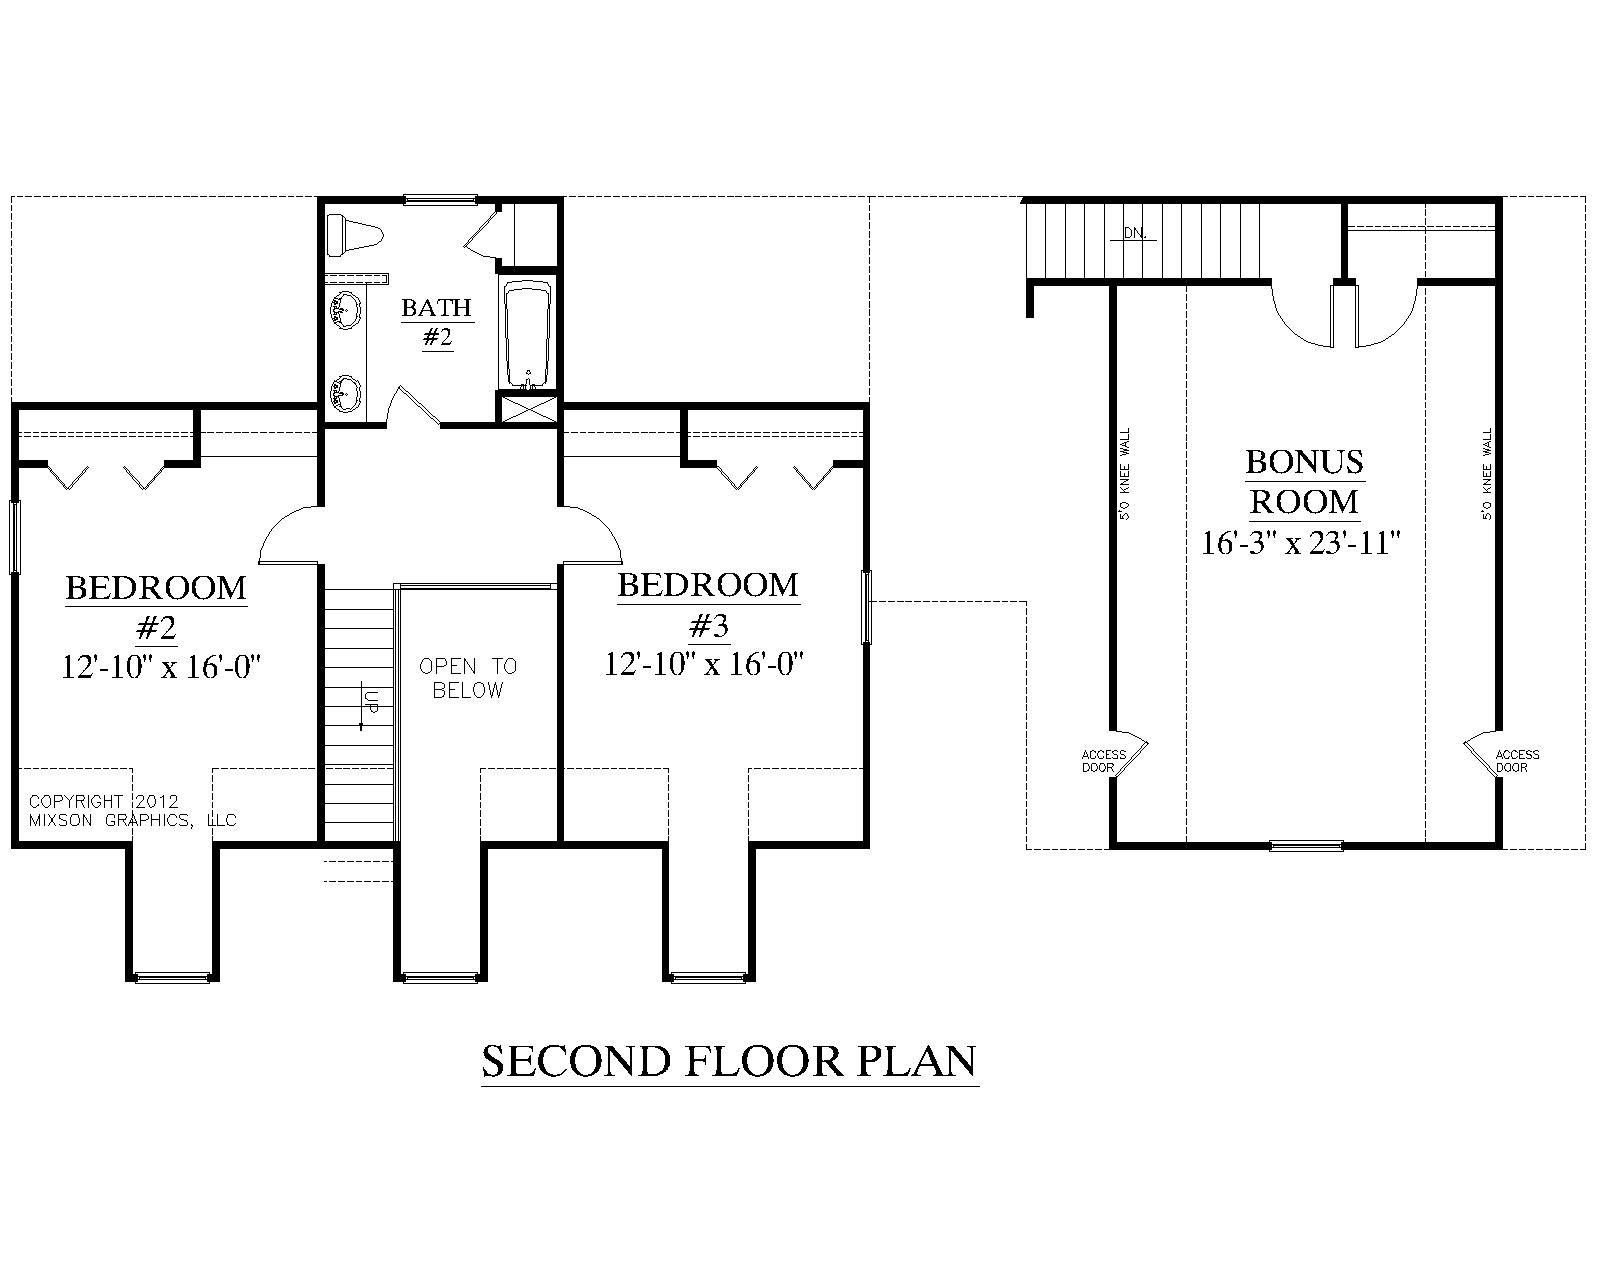 House Plan 2091 B Mayfield B Second Floor Plan Colonial Cottage 1 1 2 Story Design With